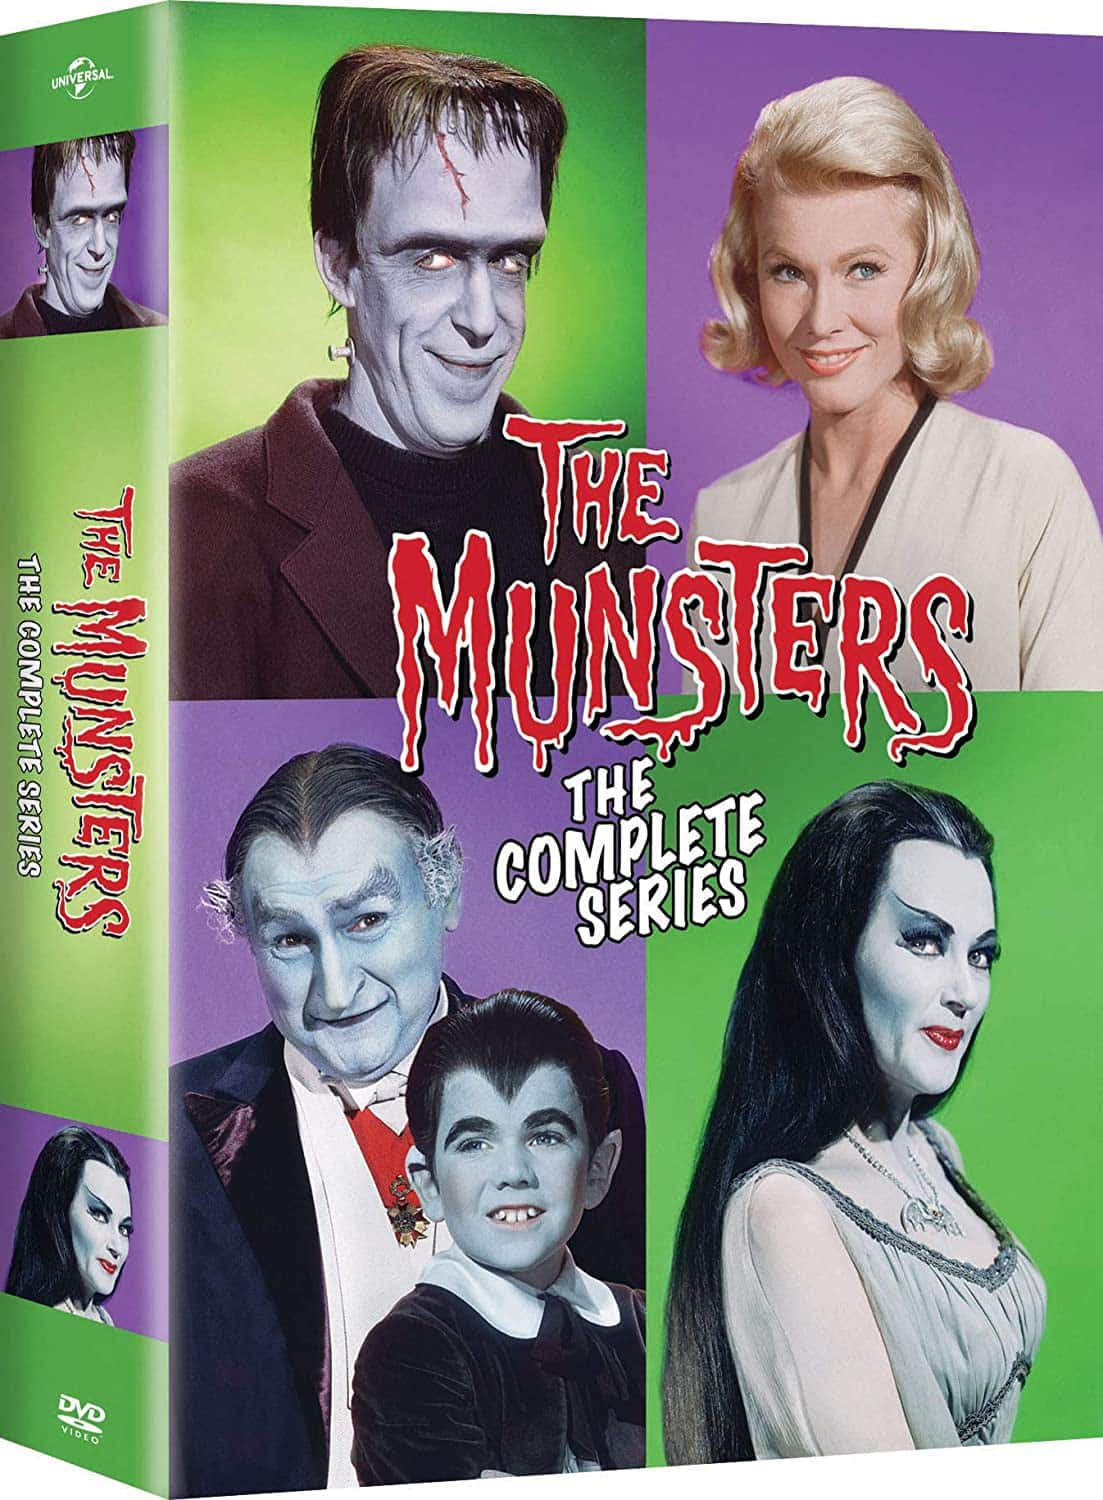 The Munsters: The Complete Series (DVD) $16.99 - Amazon